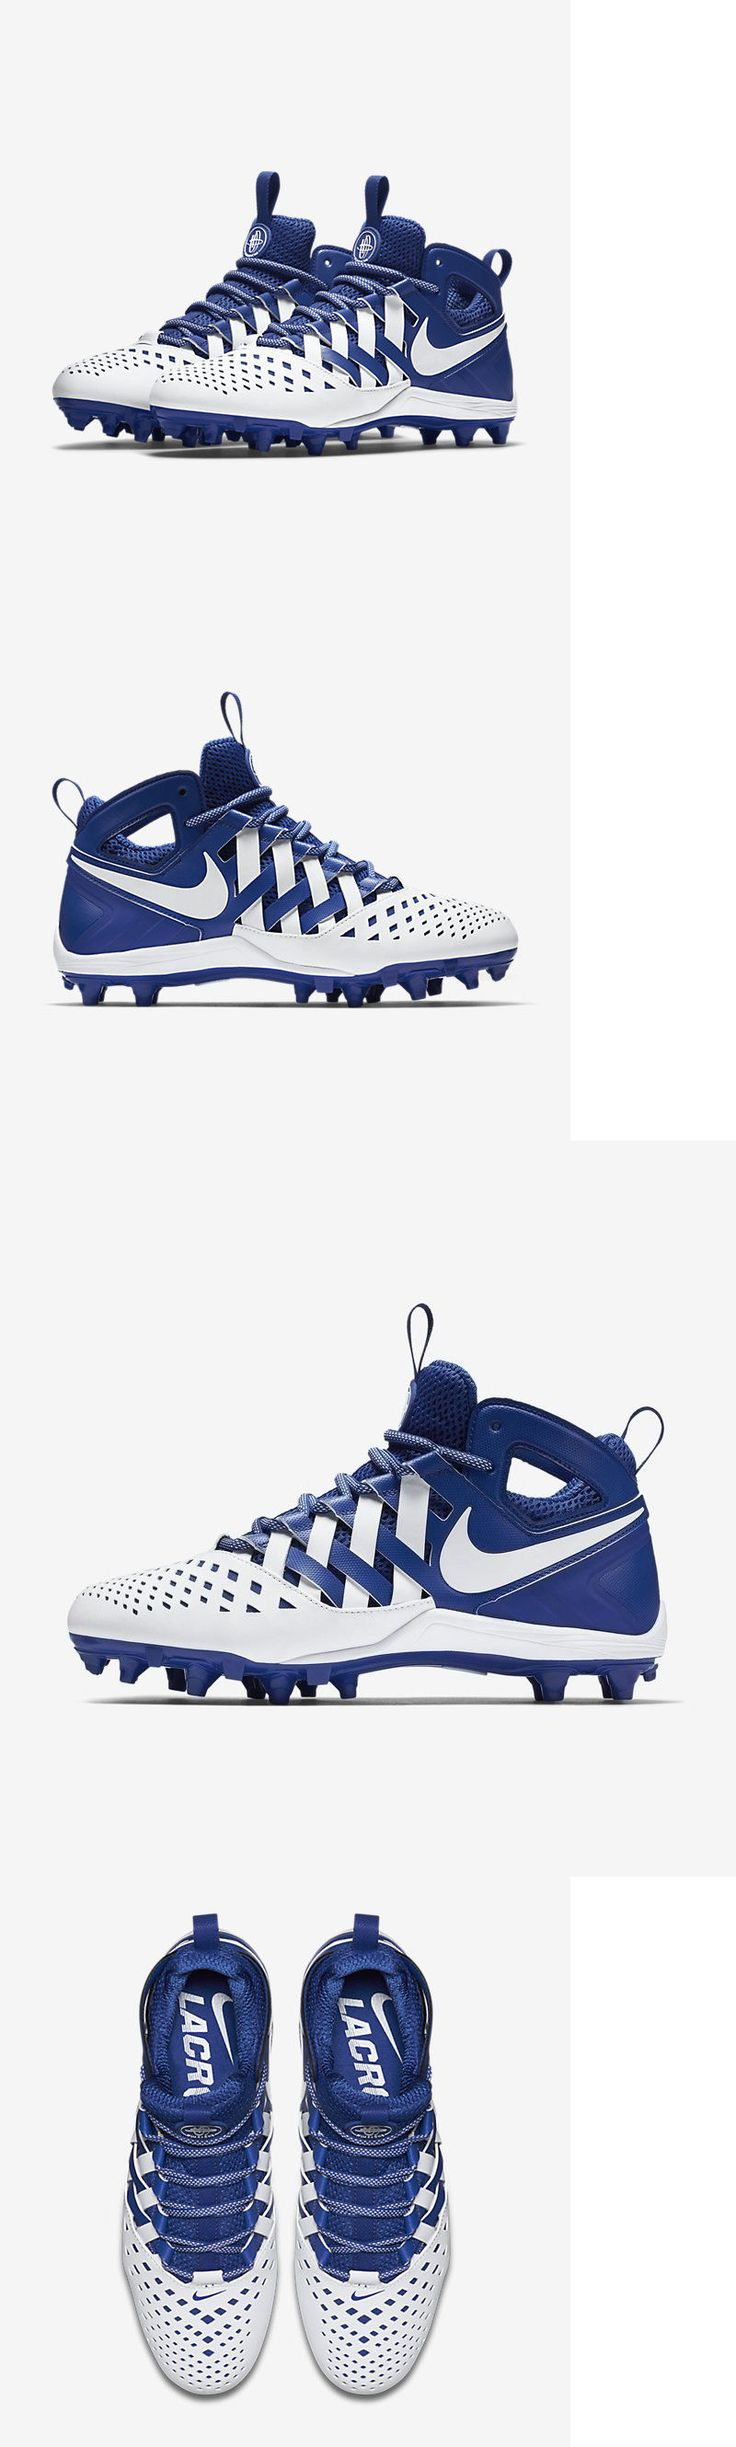 Footwear 159154: New! $100 Nike Huarache V Lacrosse Cleats Royal Blue And White Men S Size 9 -> BUY IT NOW ONLY: $44.99 on eBay!